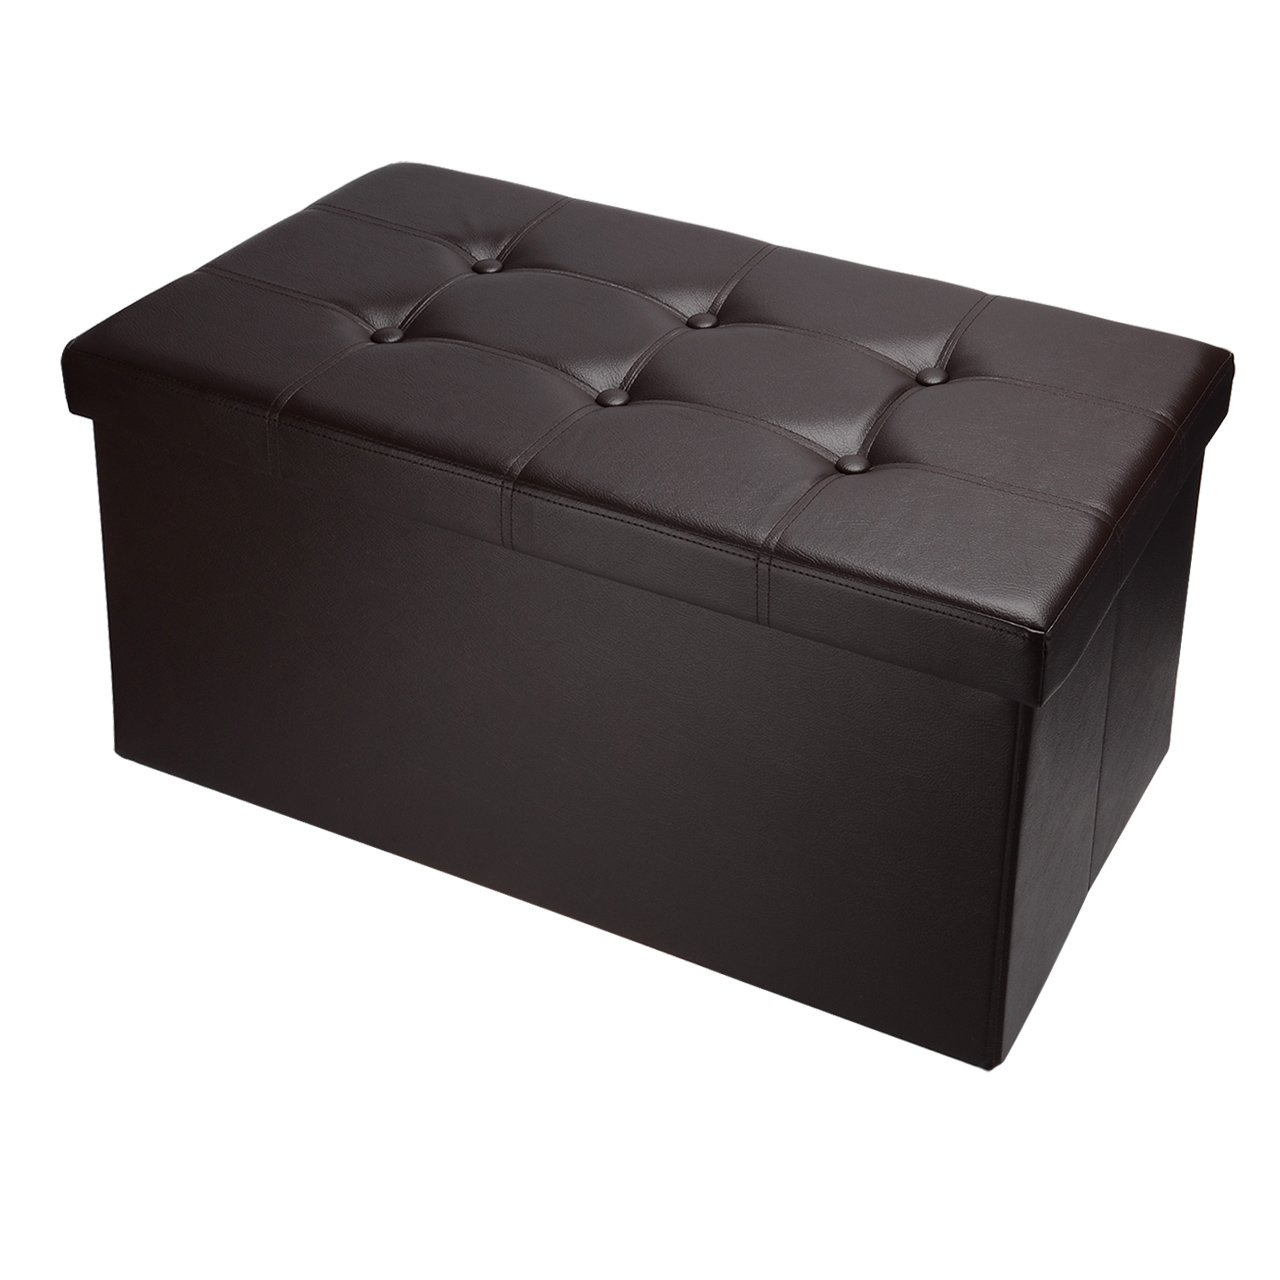 SortWise™ Folding Storage Ottoman Coffee Table Foot Rest Stool/Bench Seat, Faux Leather (Black, 15 x 15 x 15)